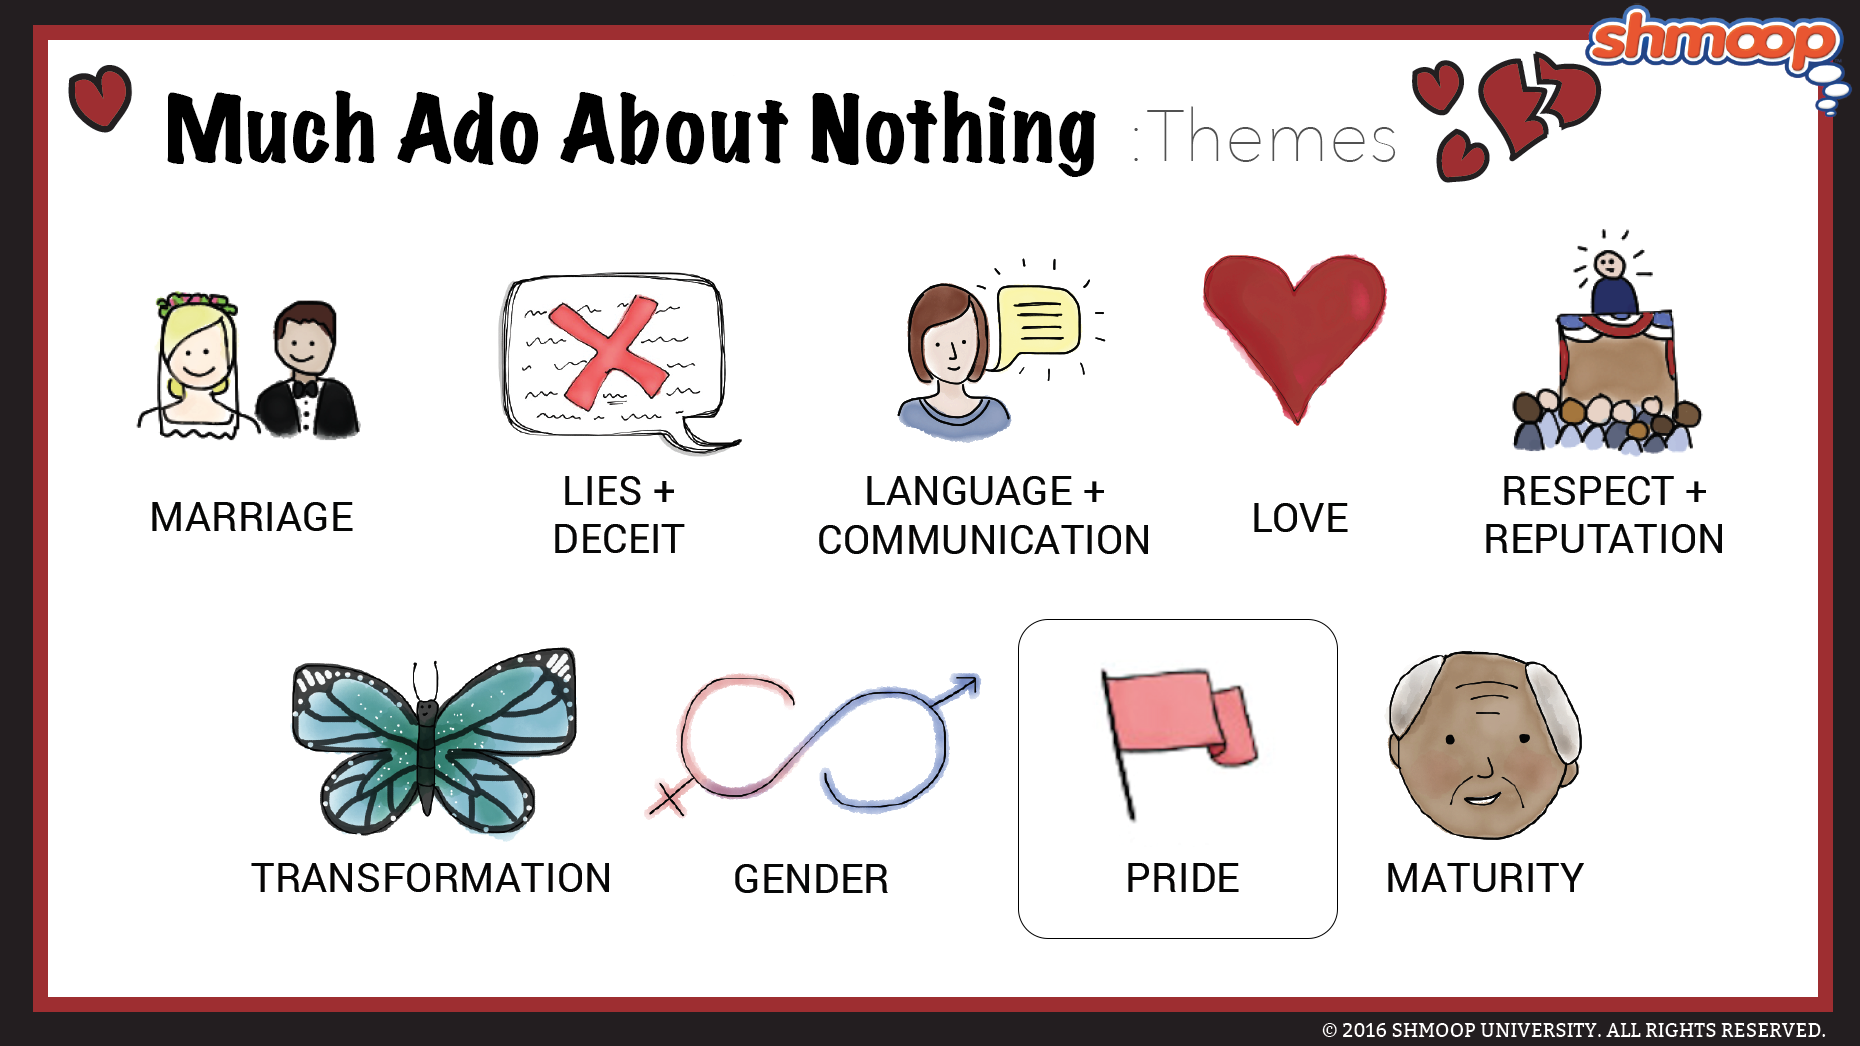 an analysis of the main themes in much ado about nothing a play by william shakespeare The one of the main themes of this play is deception, which claudio, as well as   the play much ado about nothing by william shakespeare consists of many.